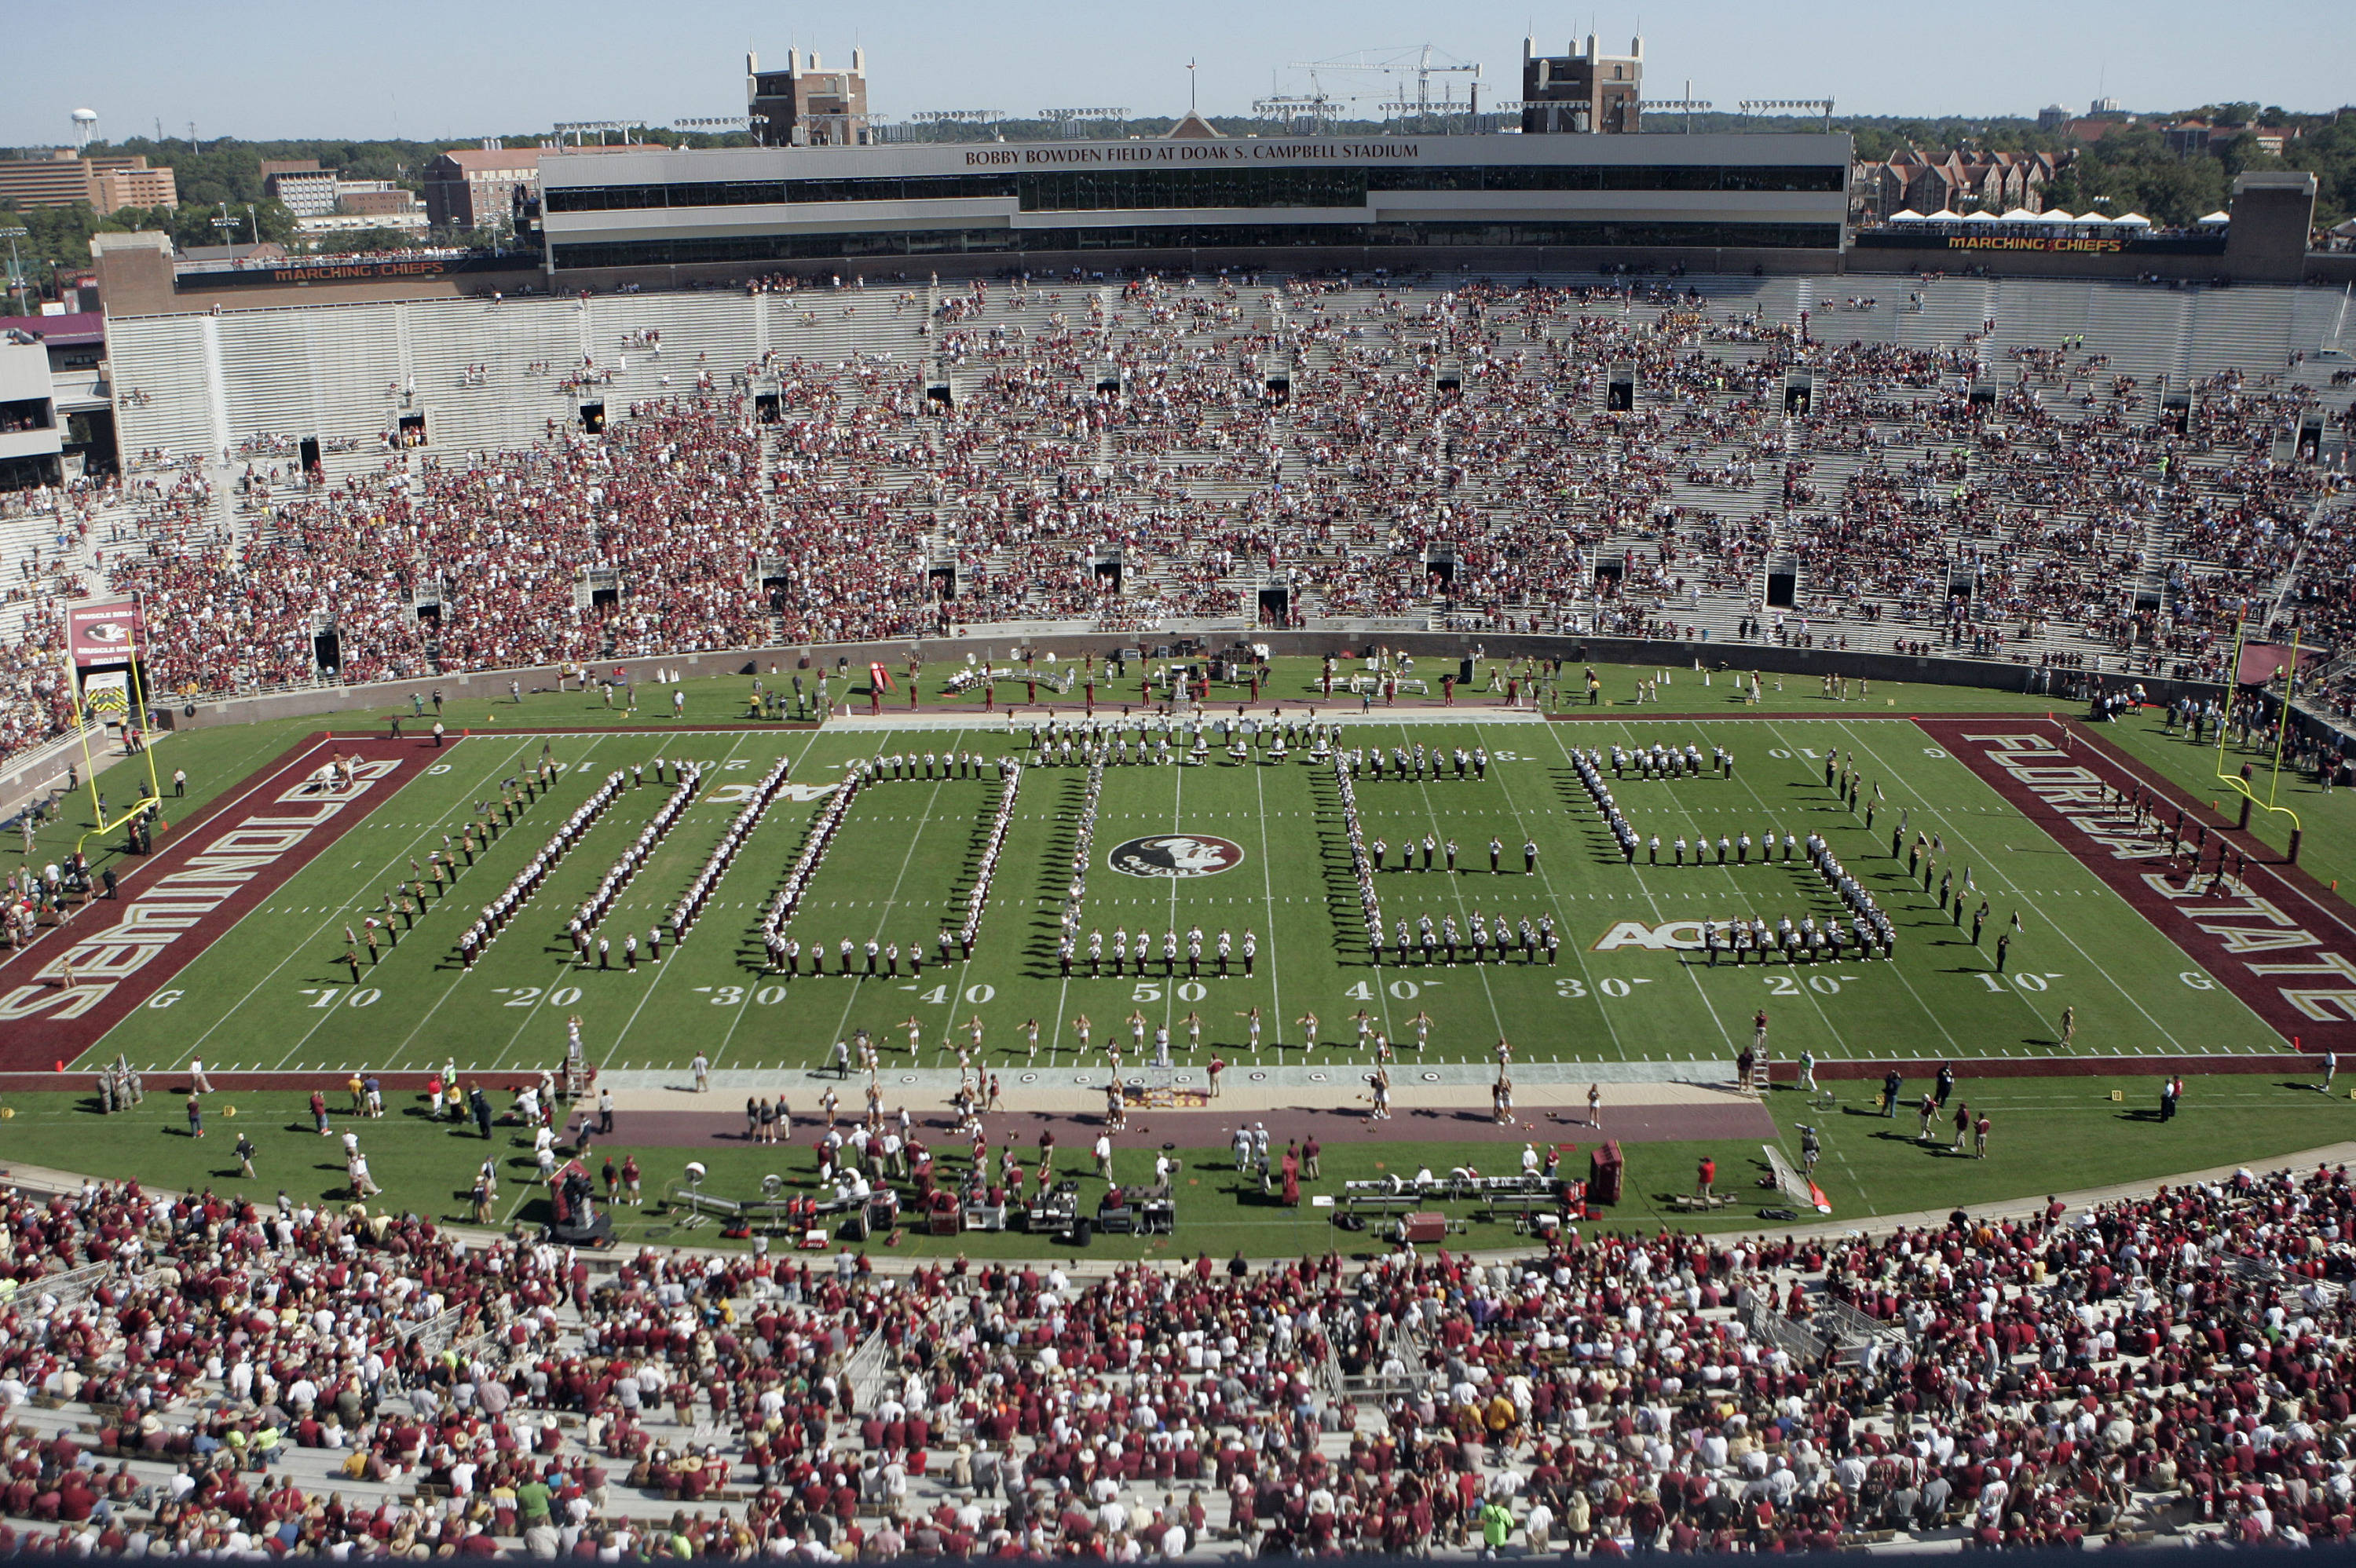 Florida State's band spells